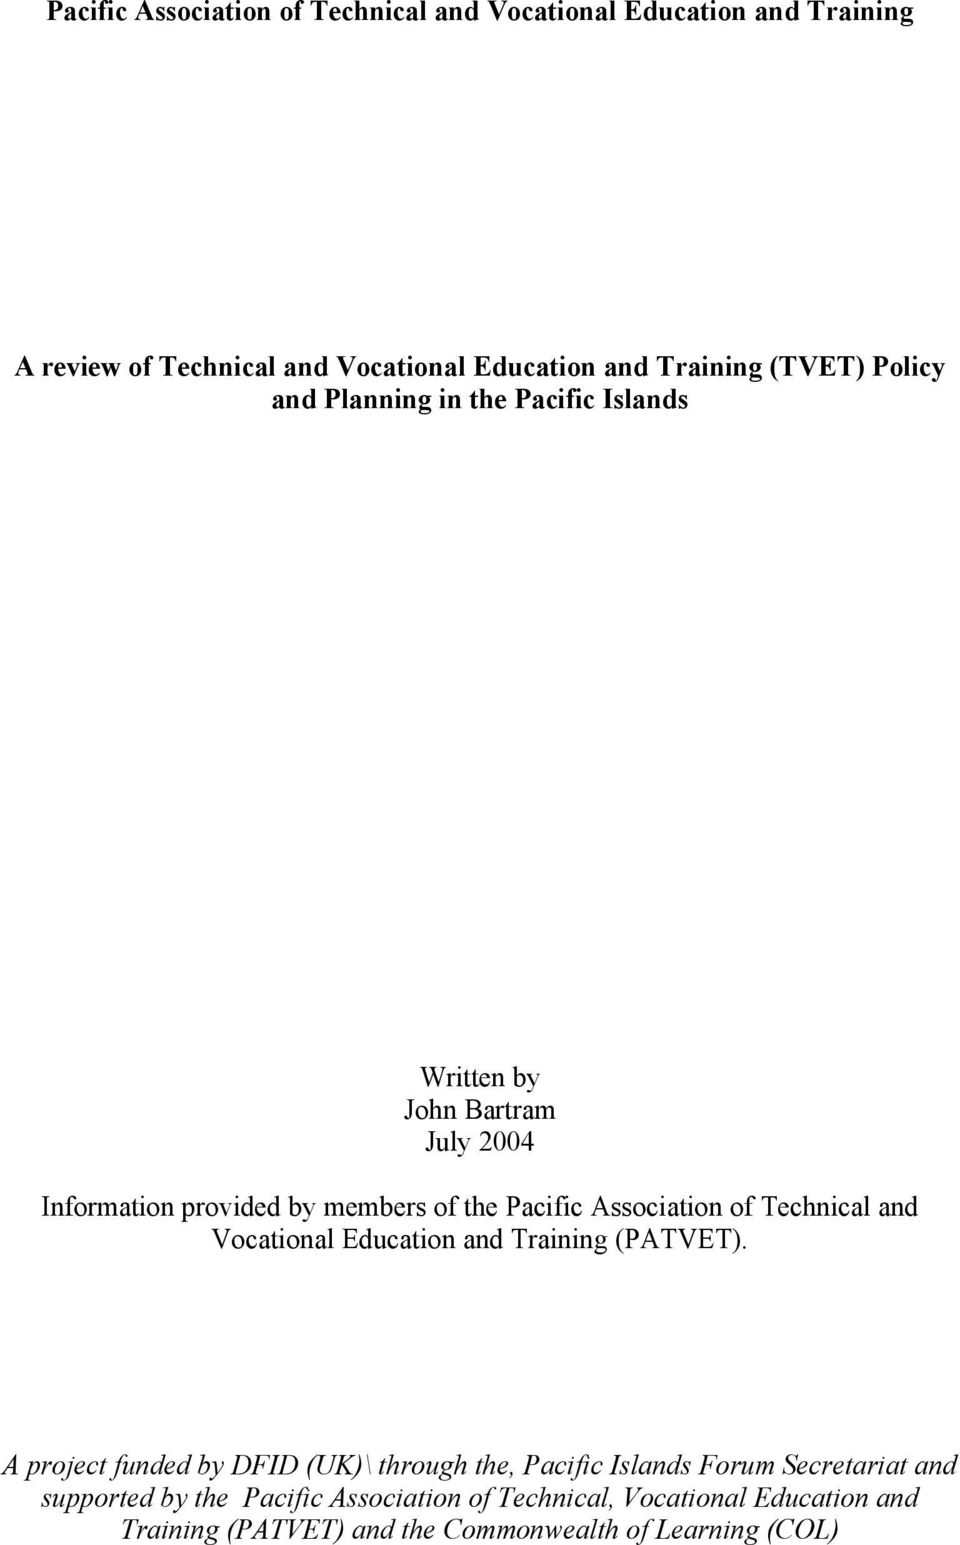 of Technical and Vocational Education and Training (PATVET).